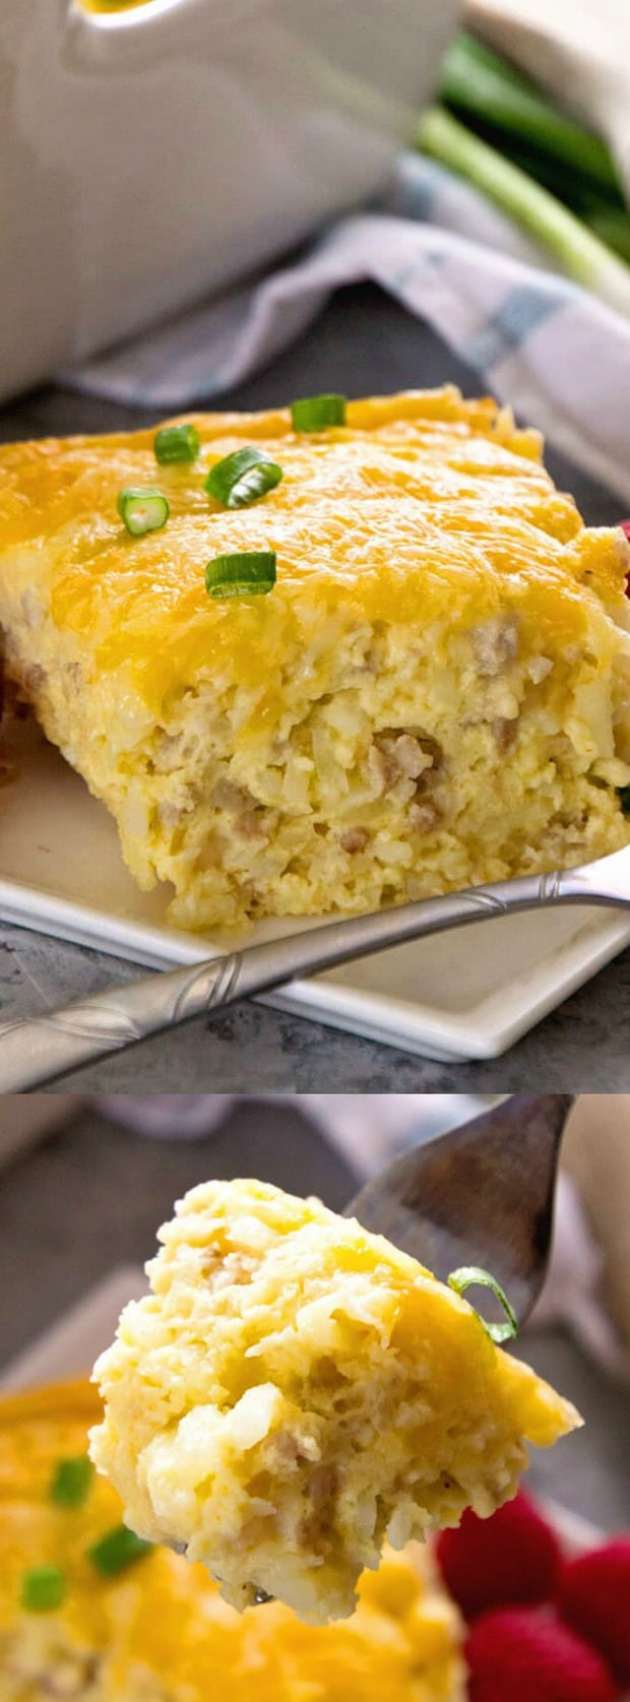 Sausage Cheese Hash Brown Breakfast Casserole Longpin